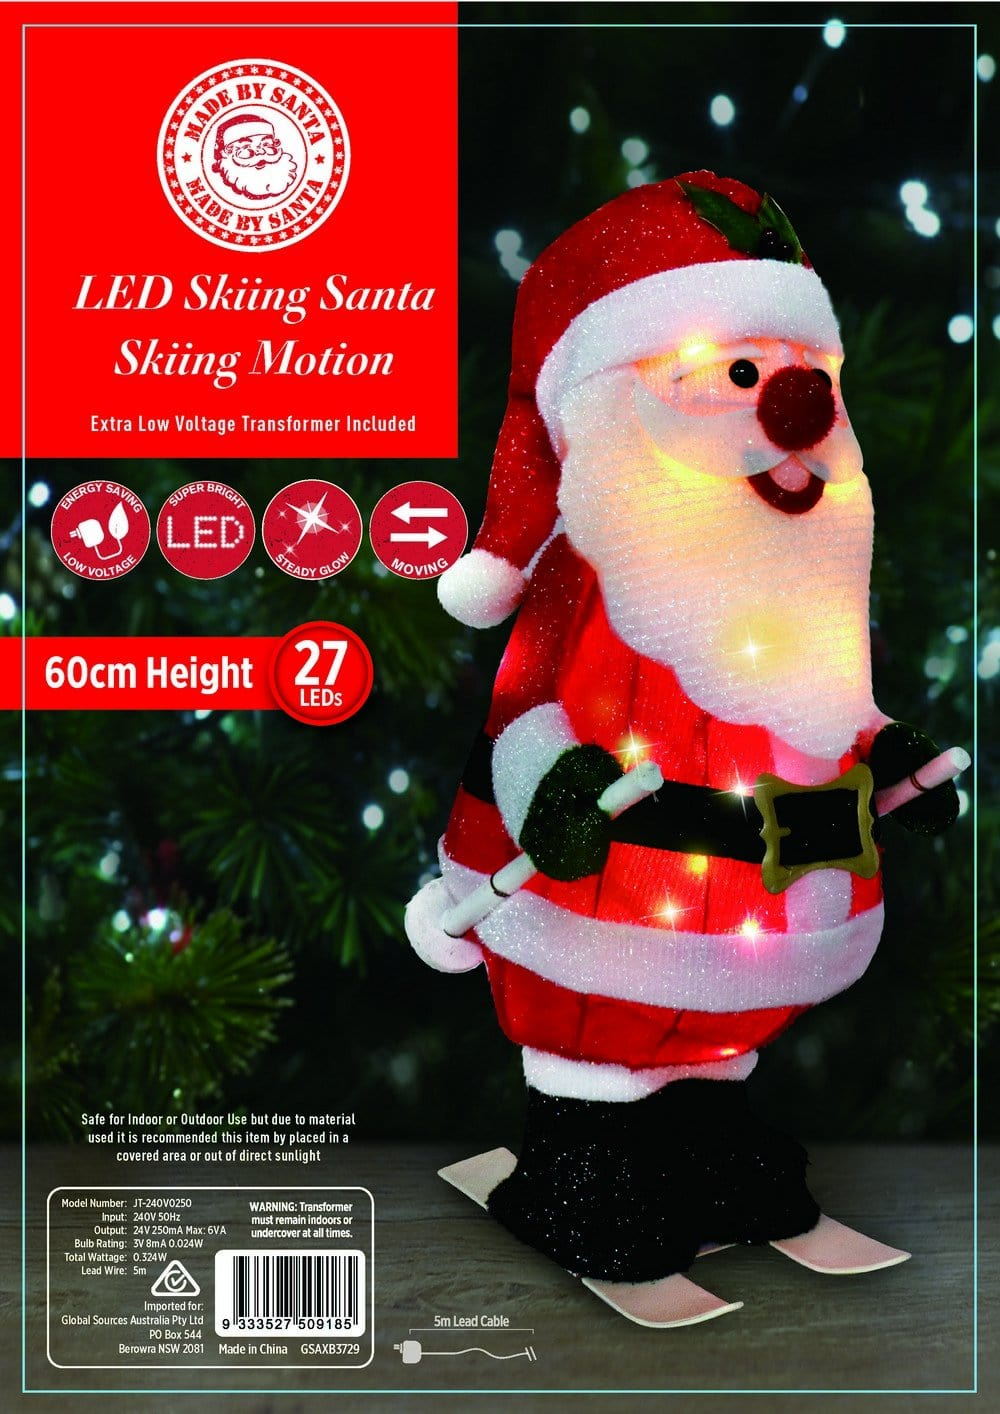 NEW ARRIVAL: LED TINSEL SKIING SANTA